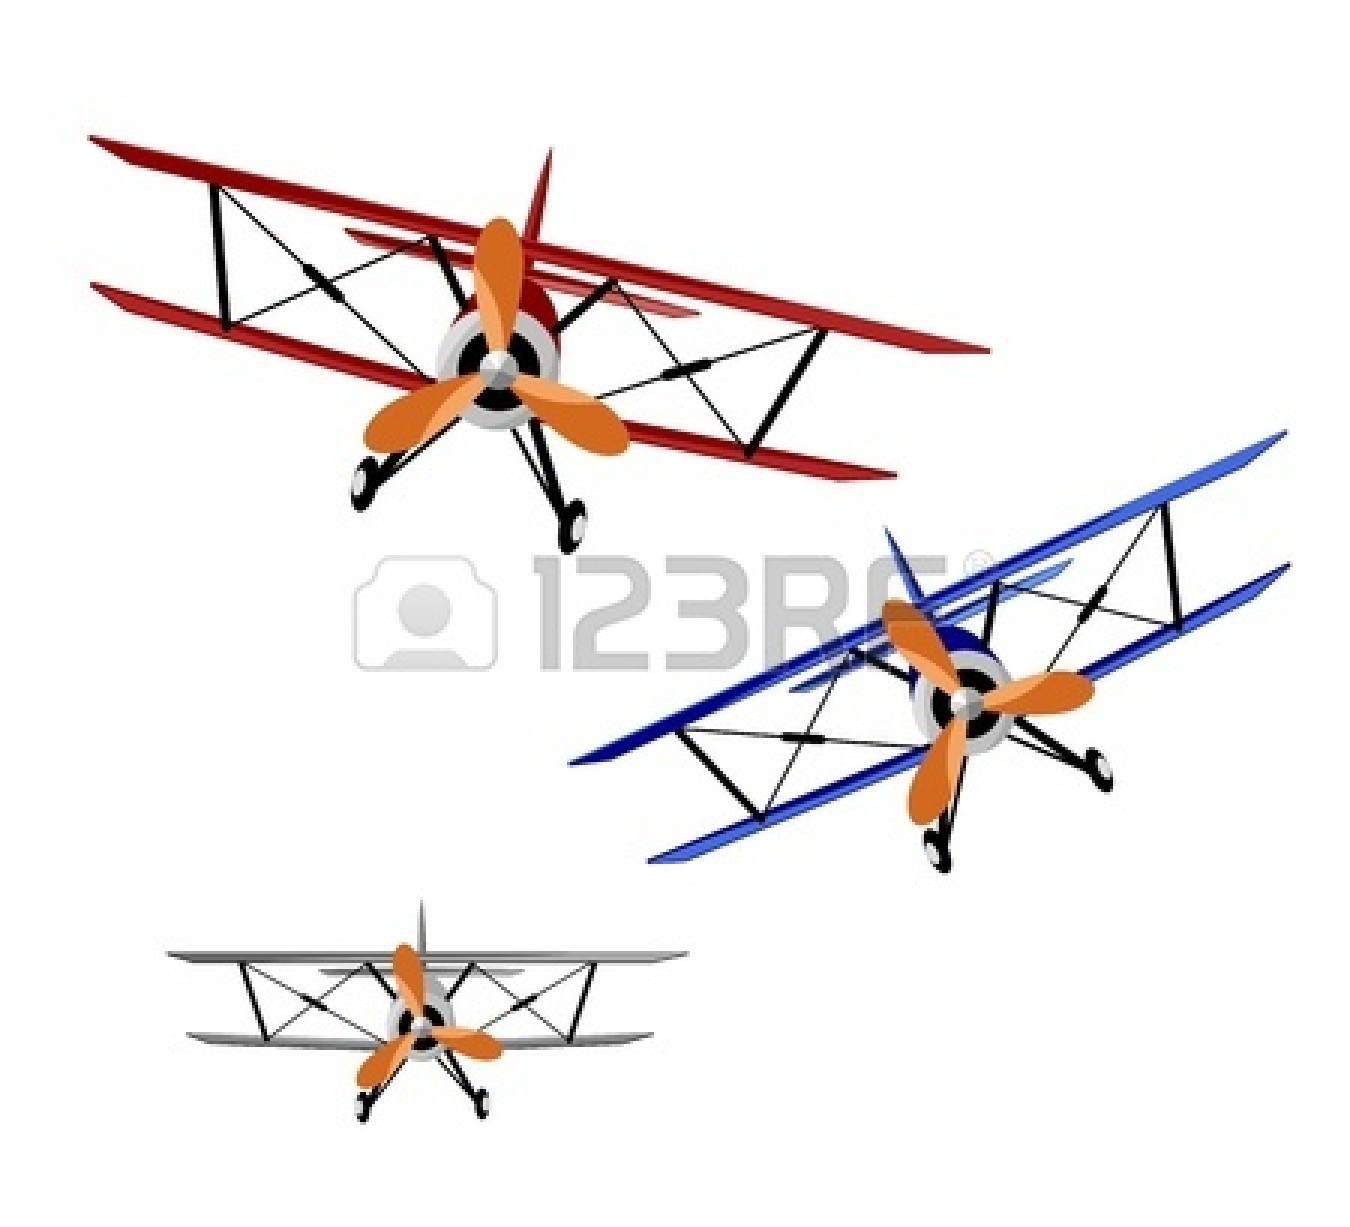 1350x1227 Aviation Clipart Biplane